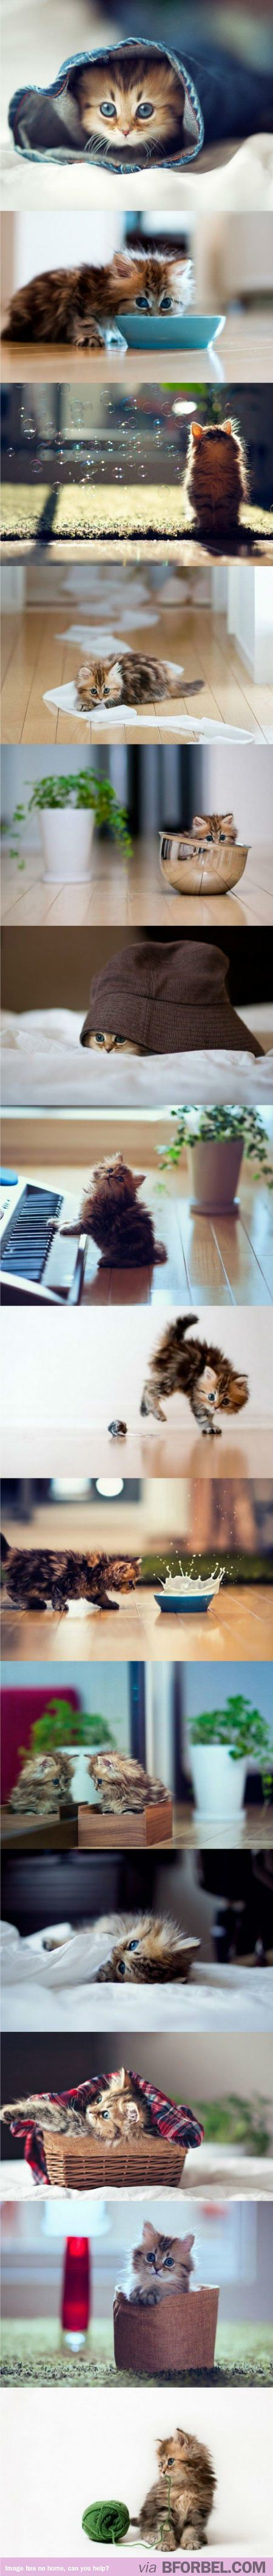 14 Pictures Of The Tiniest Kitten That Obliterates All Other Tiny Kitten Photos…